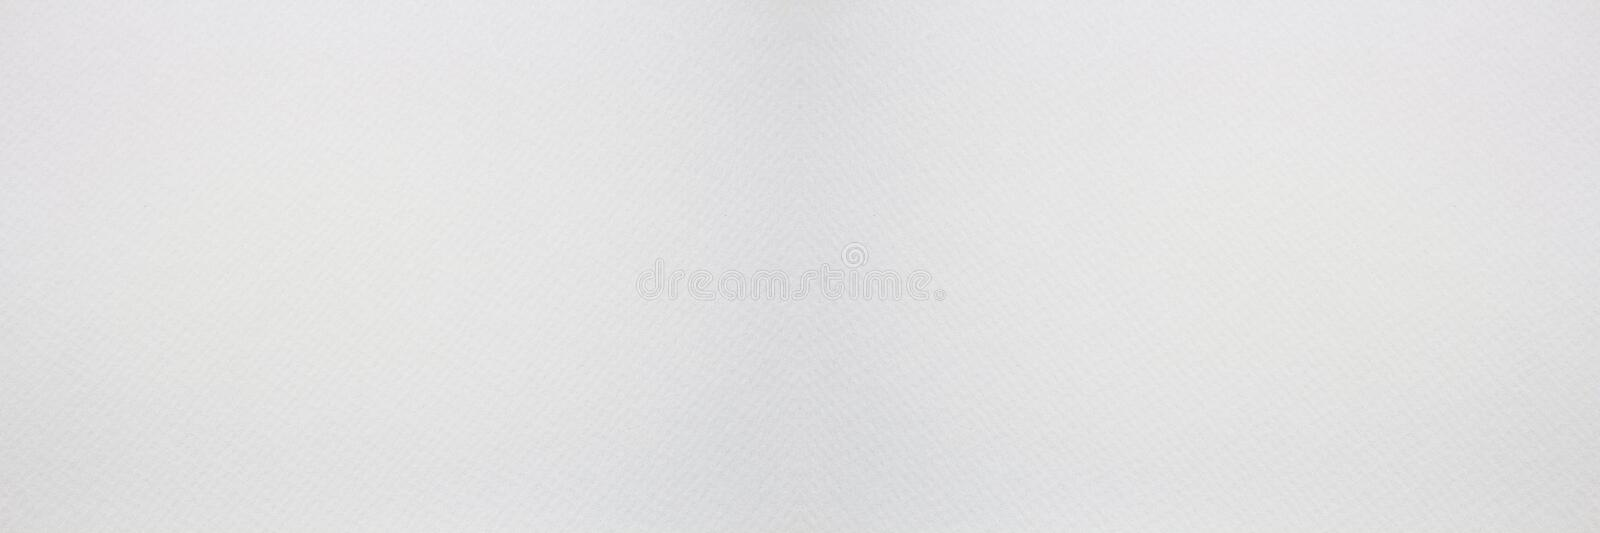 Panorama of Clean white paper texture. High resolution photo royalty free stock photography